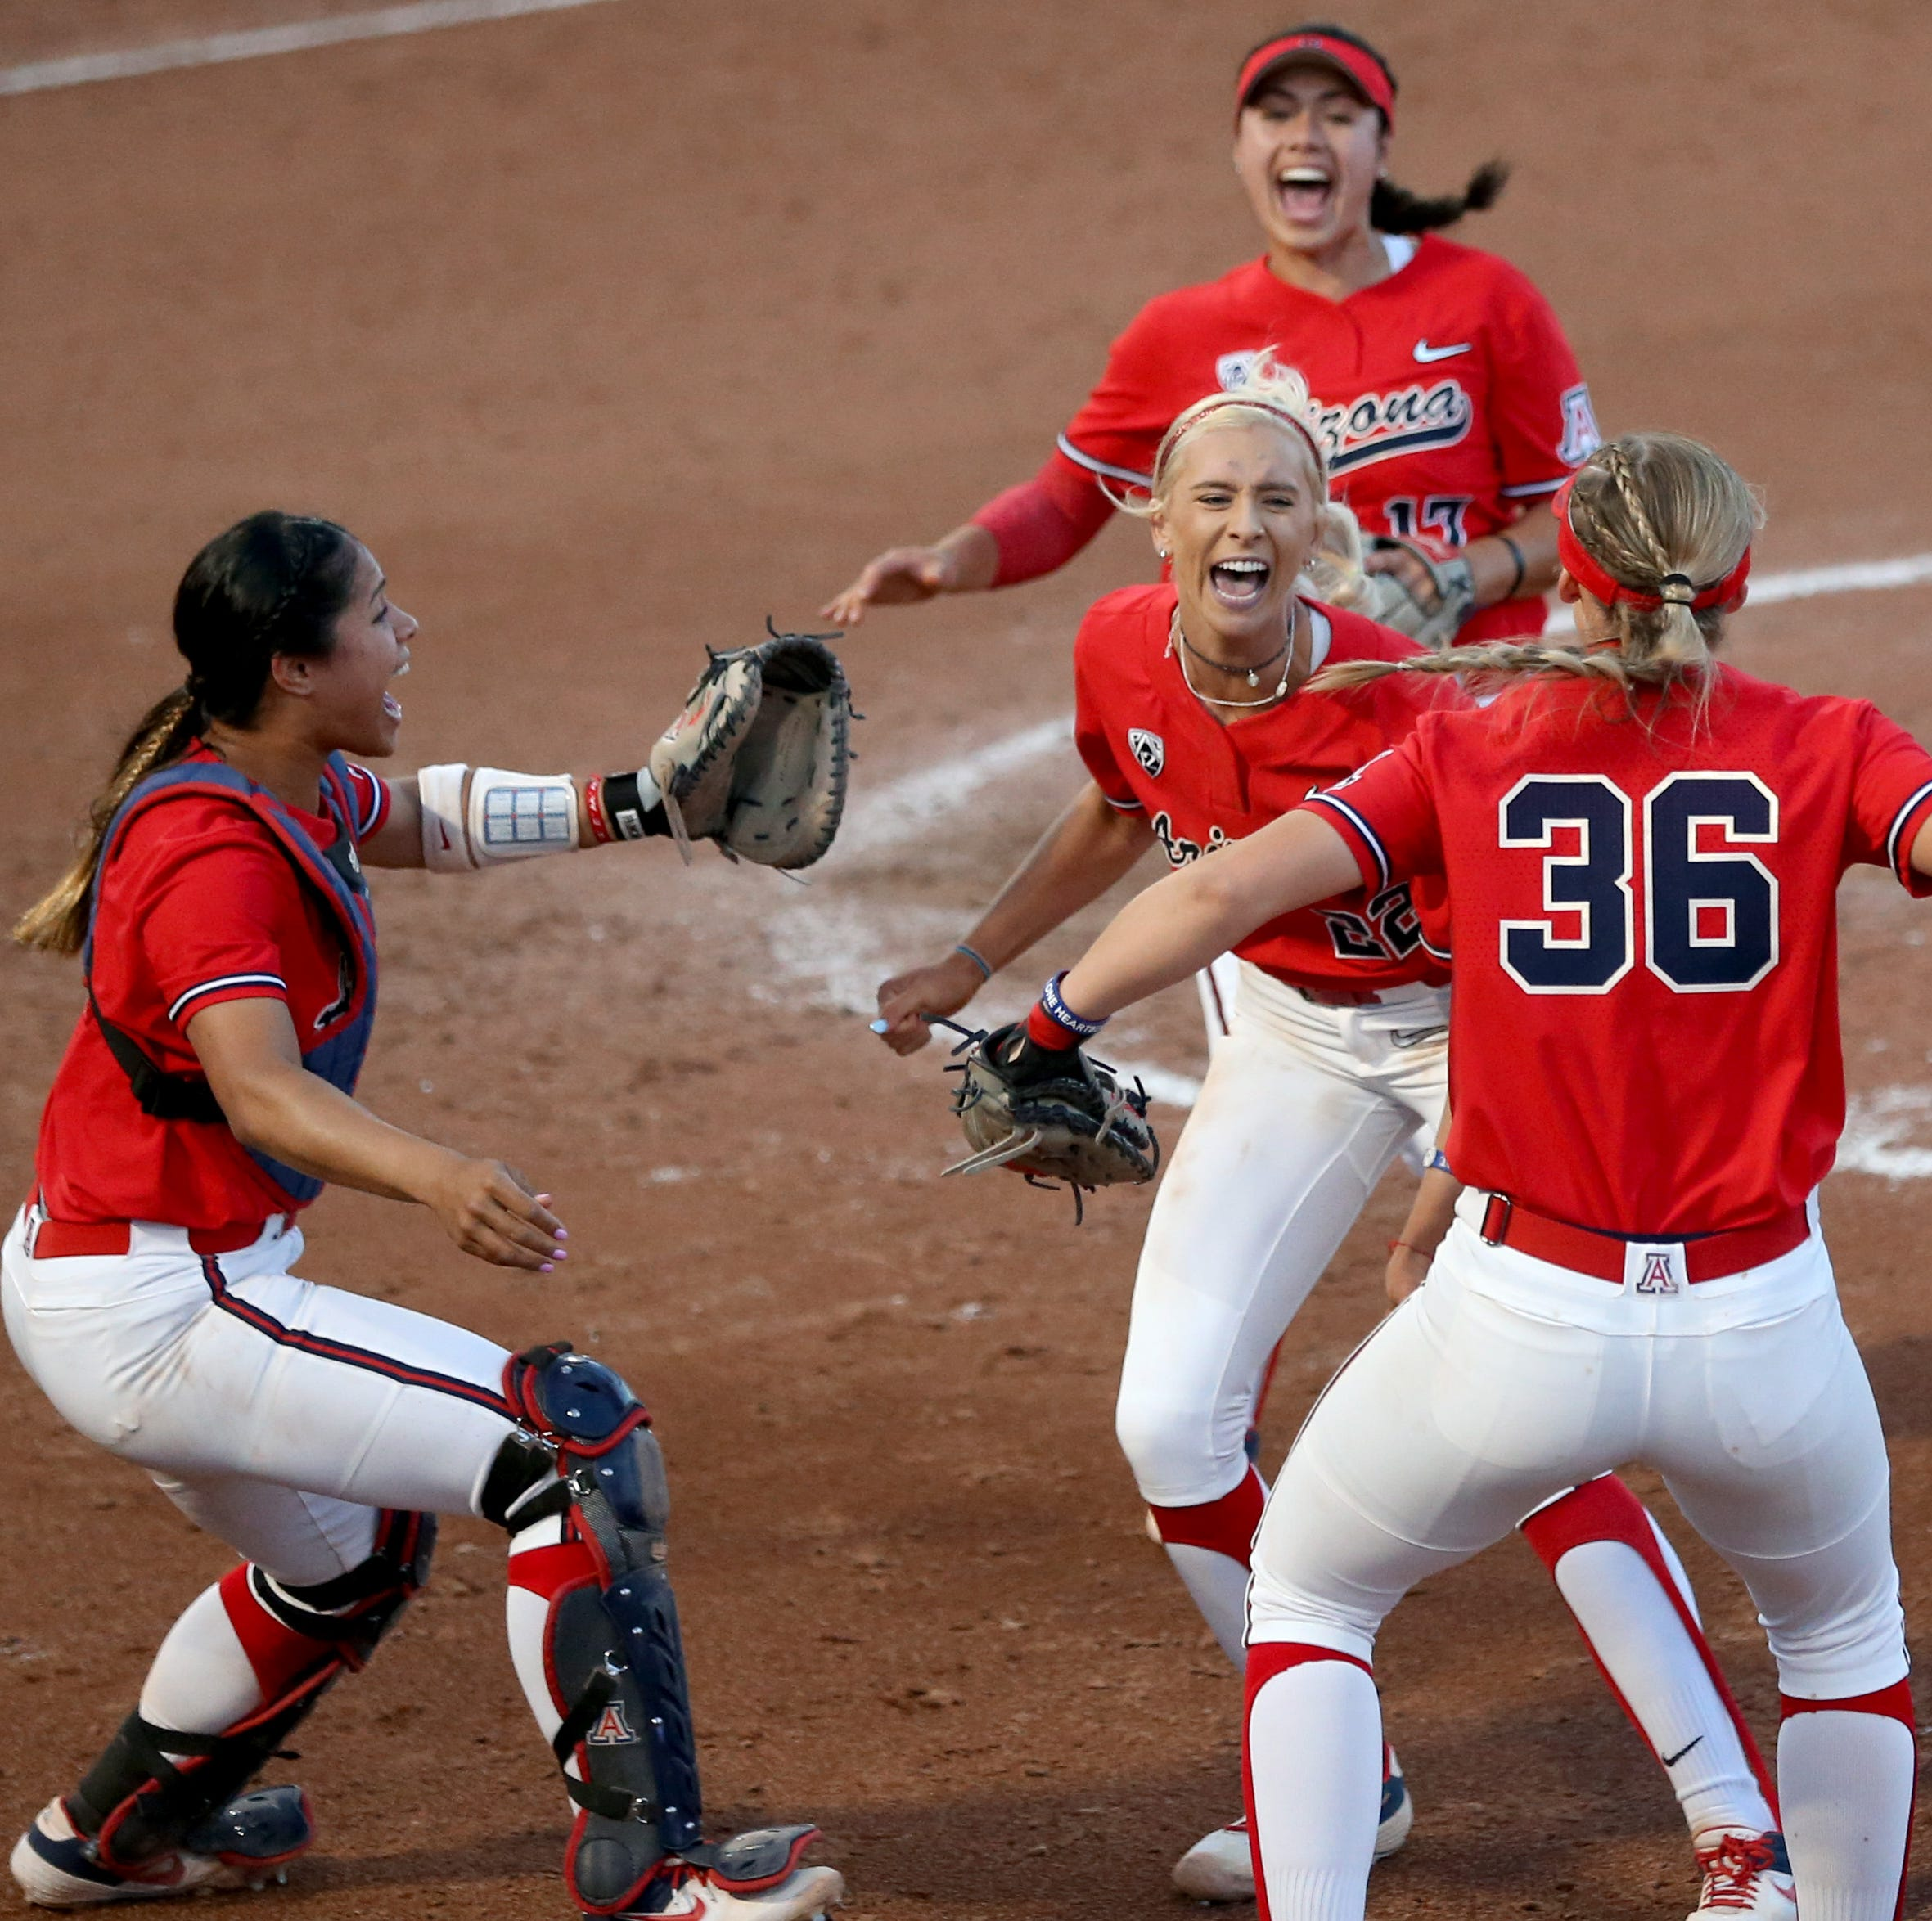 Arizona Wildcats softball heading to first Women's College World Series since 2010